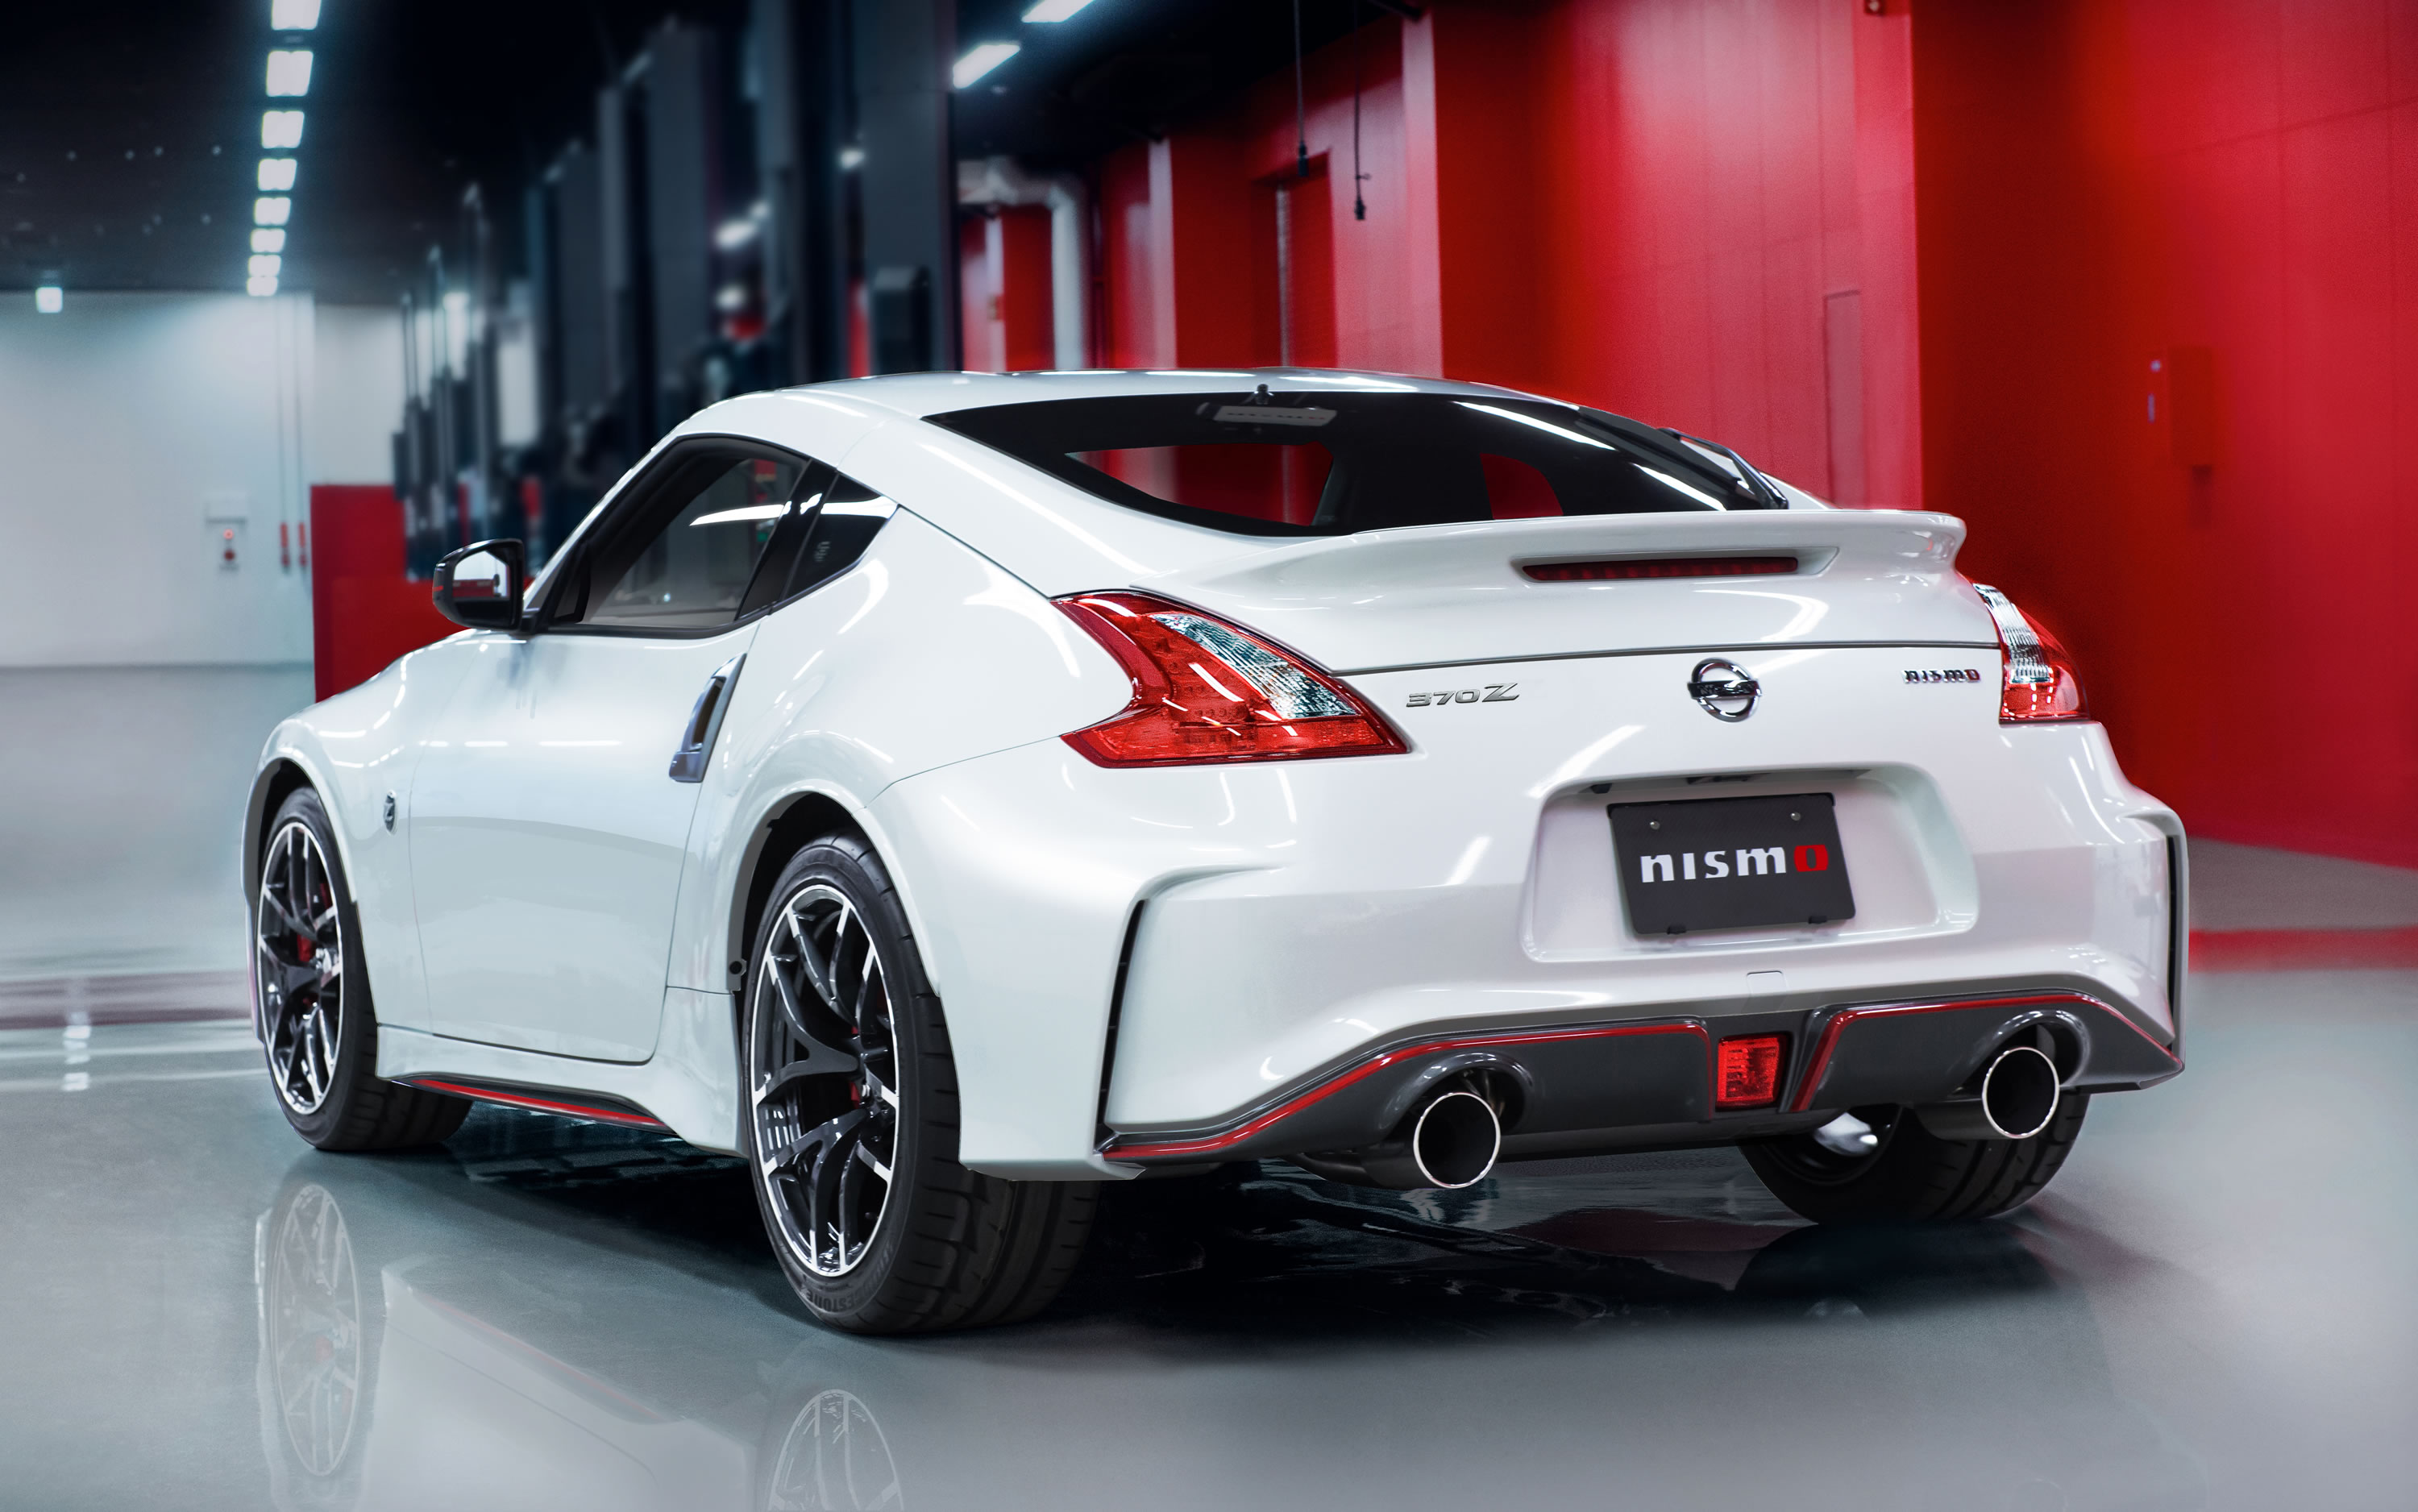 2015 nissan 370z nismo photos specs and review rs. Black Bedroom Furniture Sets. Home Design Ideas